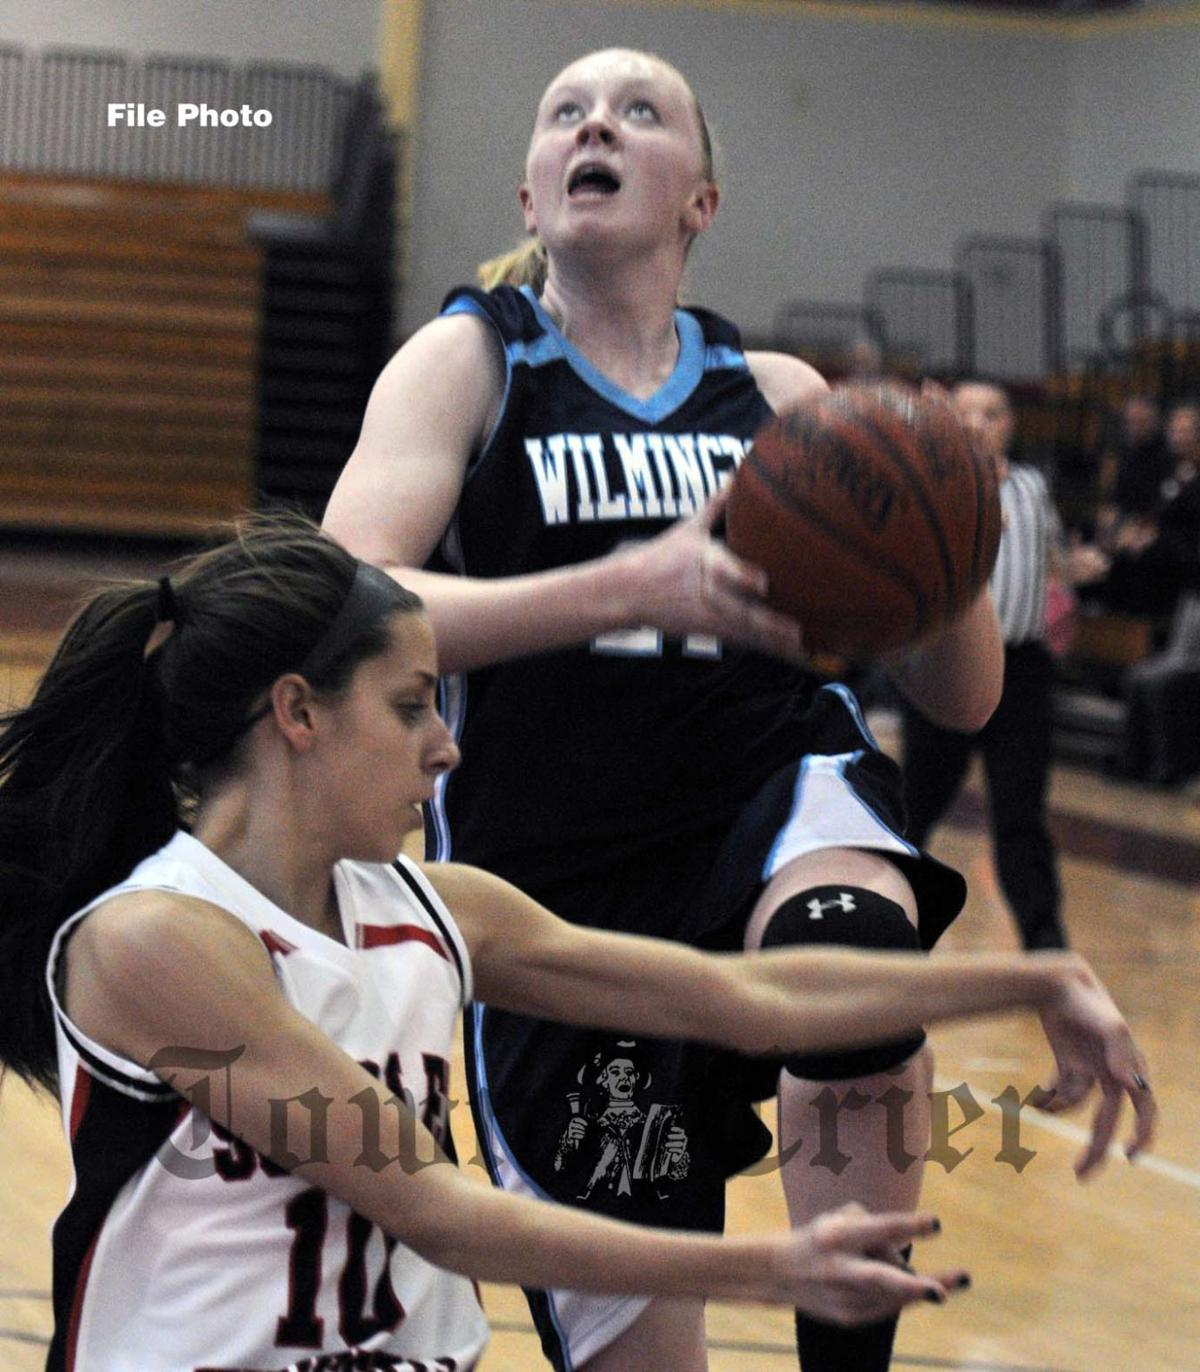 Amanda Keane made the reserve team for the Town Crier's All-Decade Girls' Basketball team